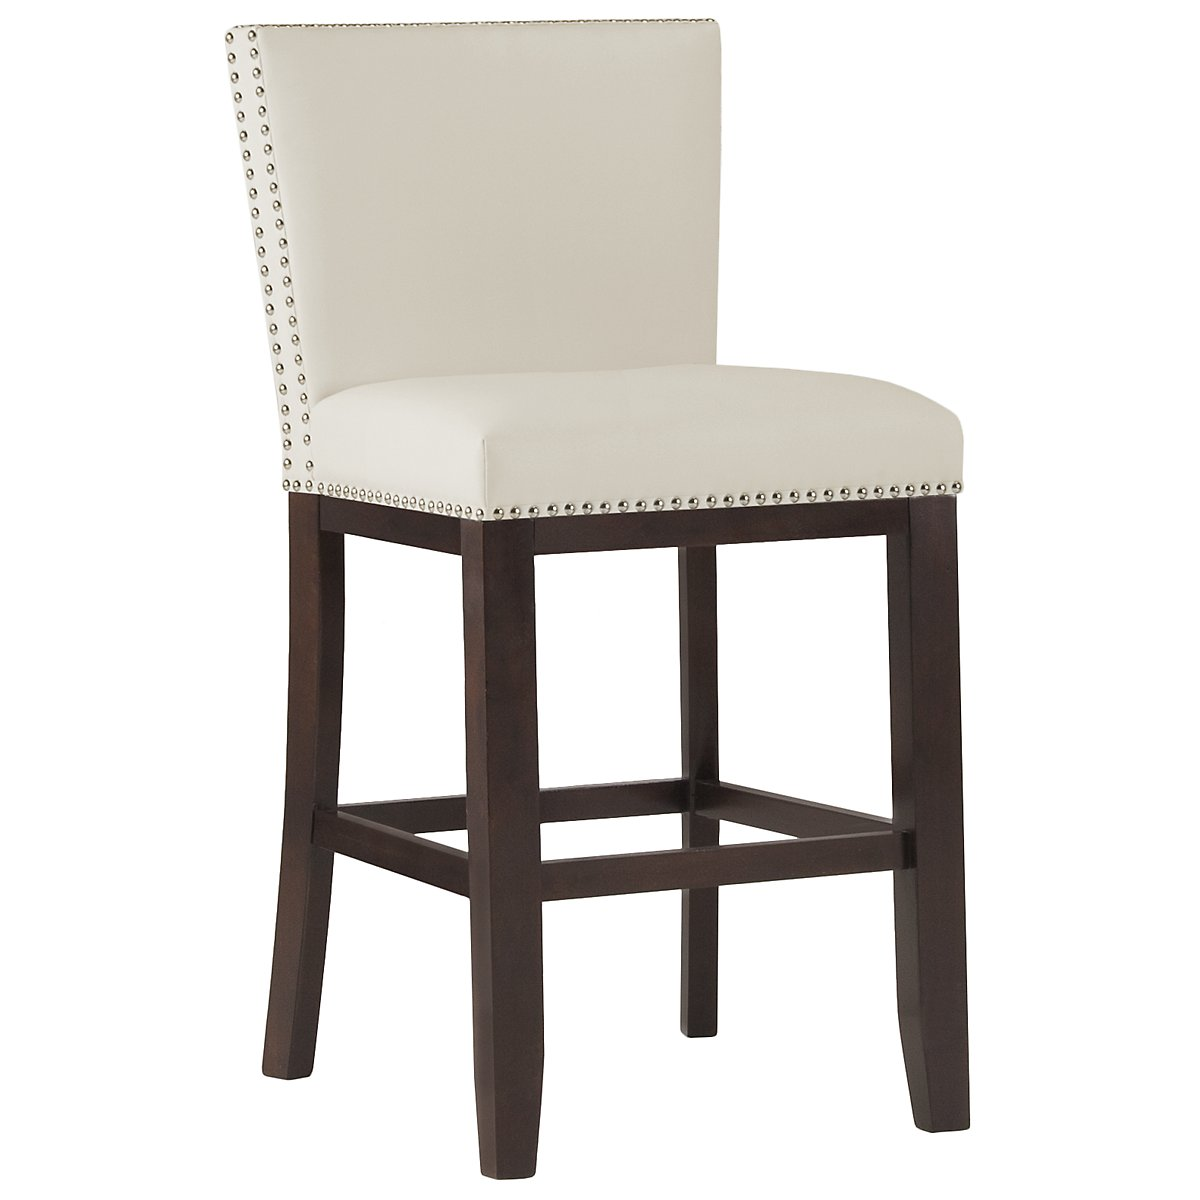 "Tiffany White 24"" Bonded Leather Barstool"